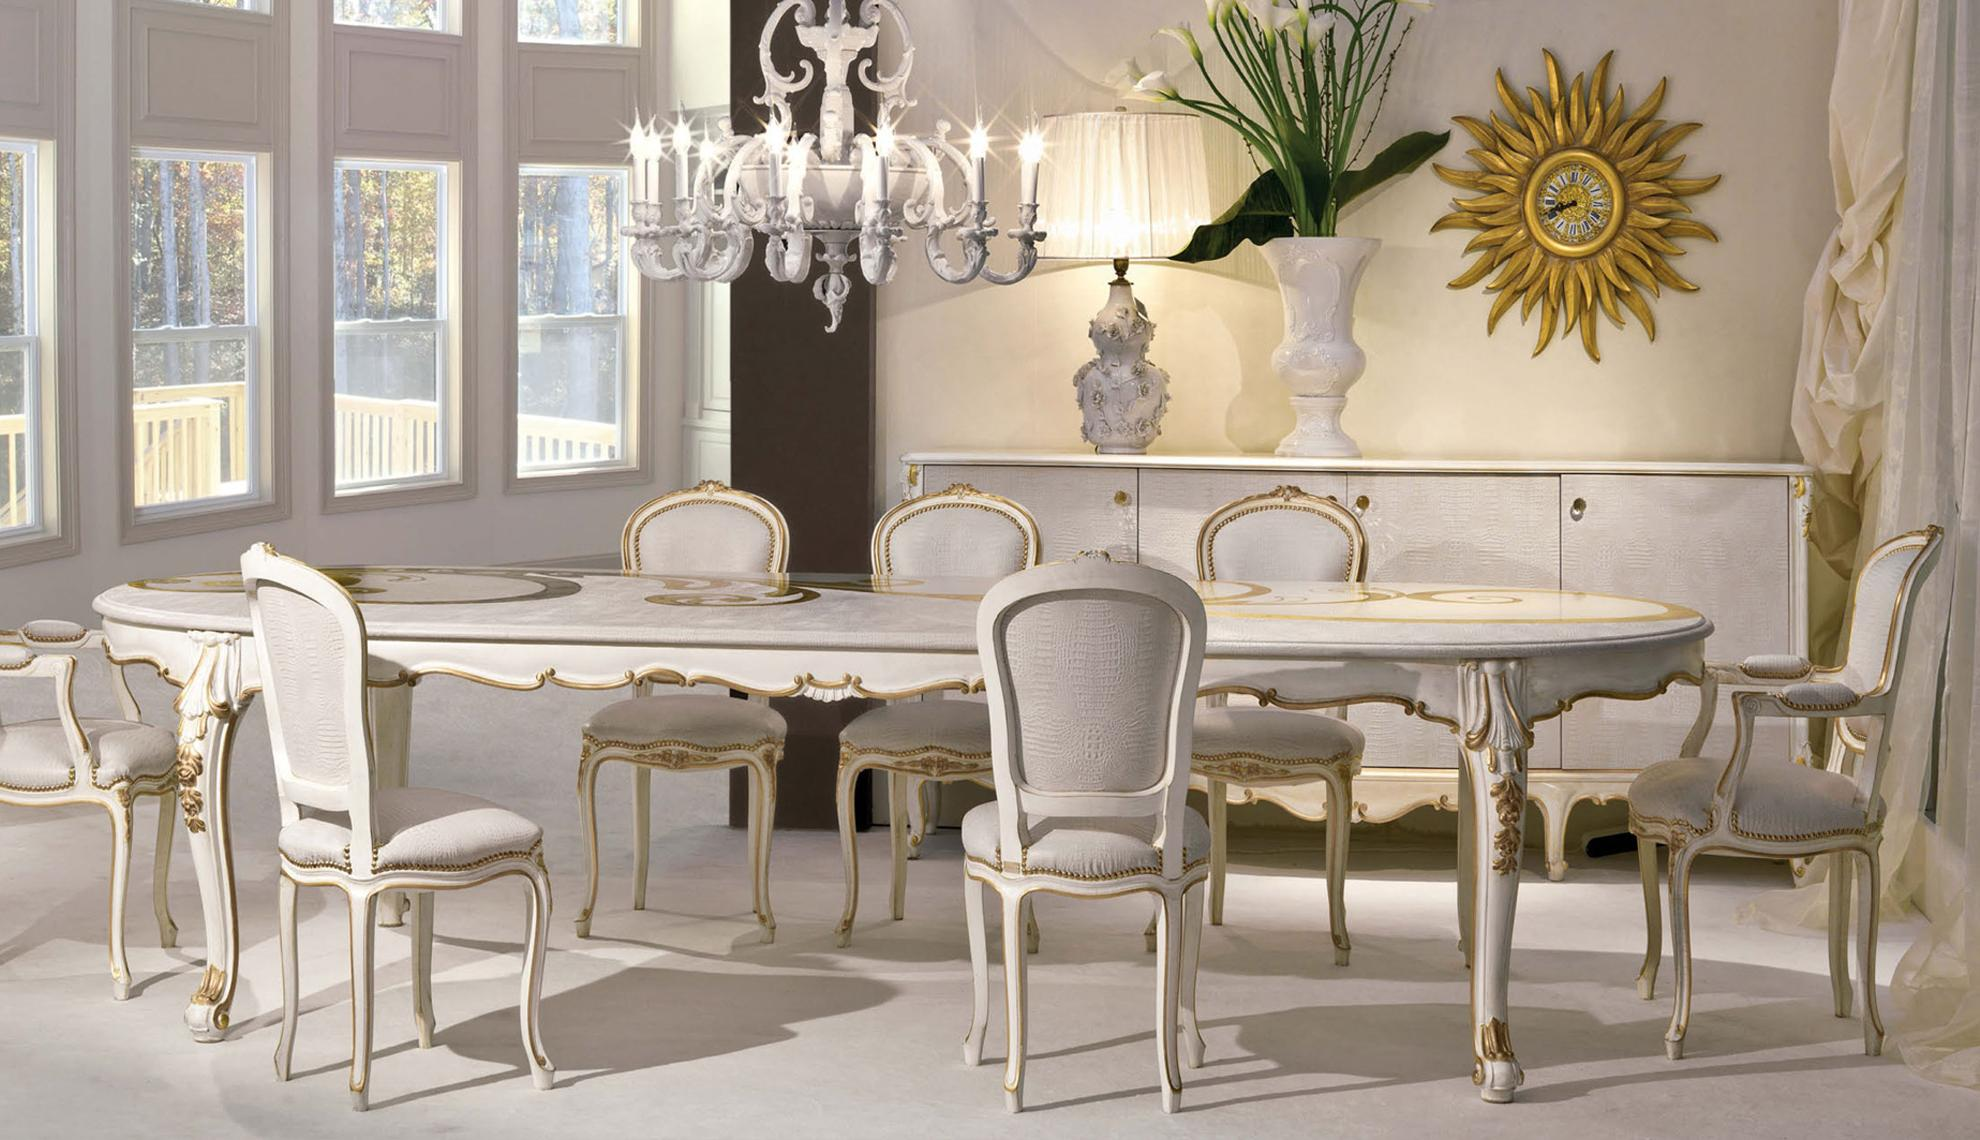 Dining room table and chairs ideas with images for Dining room table and chair sets